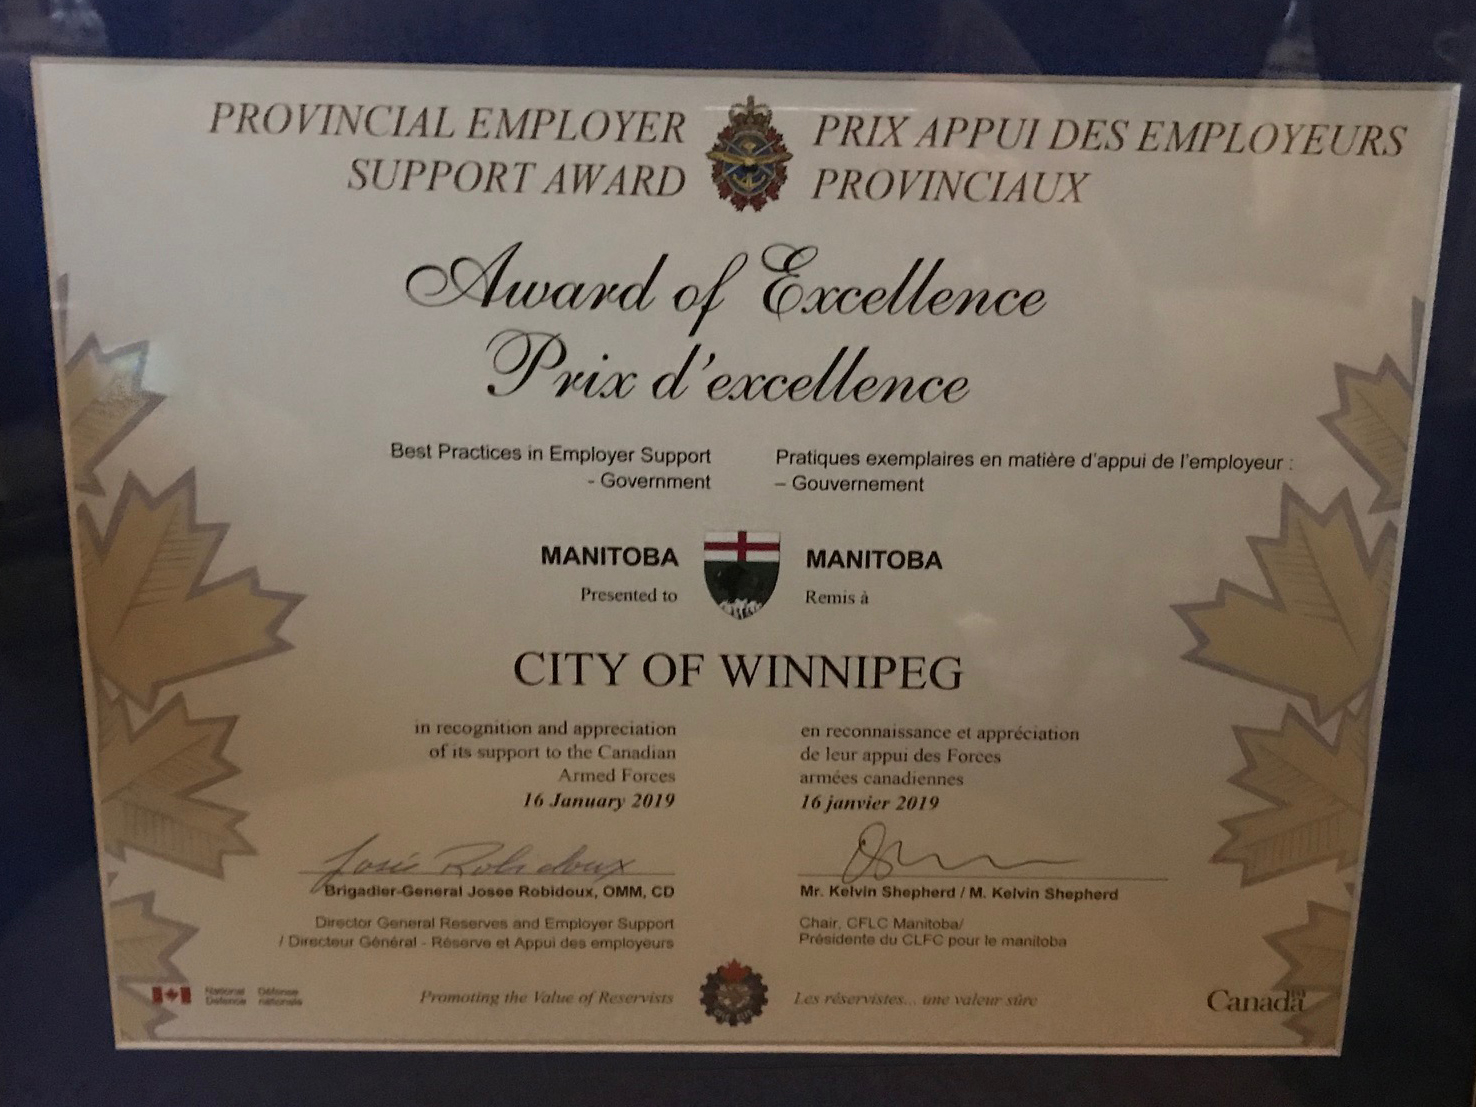 The City of Winnipeg previously received the Best Practices in Employer Support for a Government Organization for Manitoba award in January 2019.